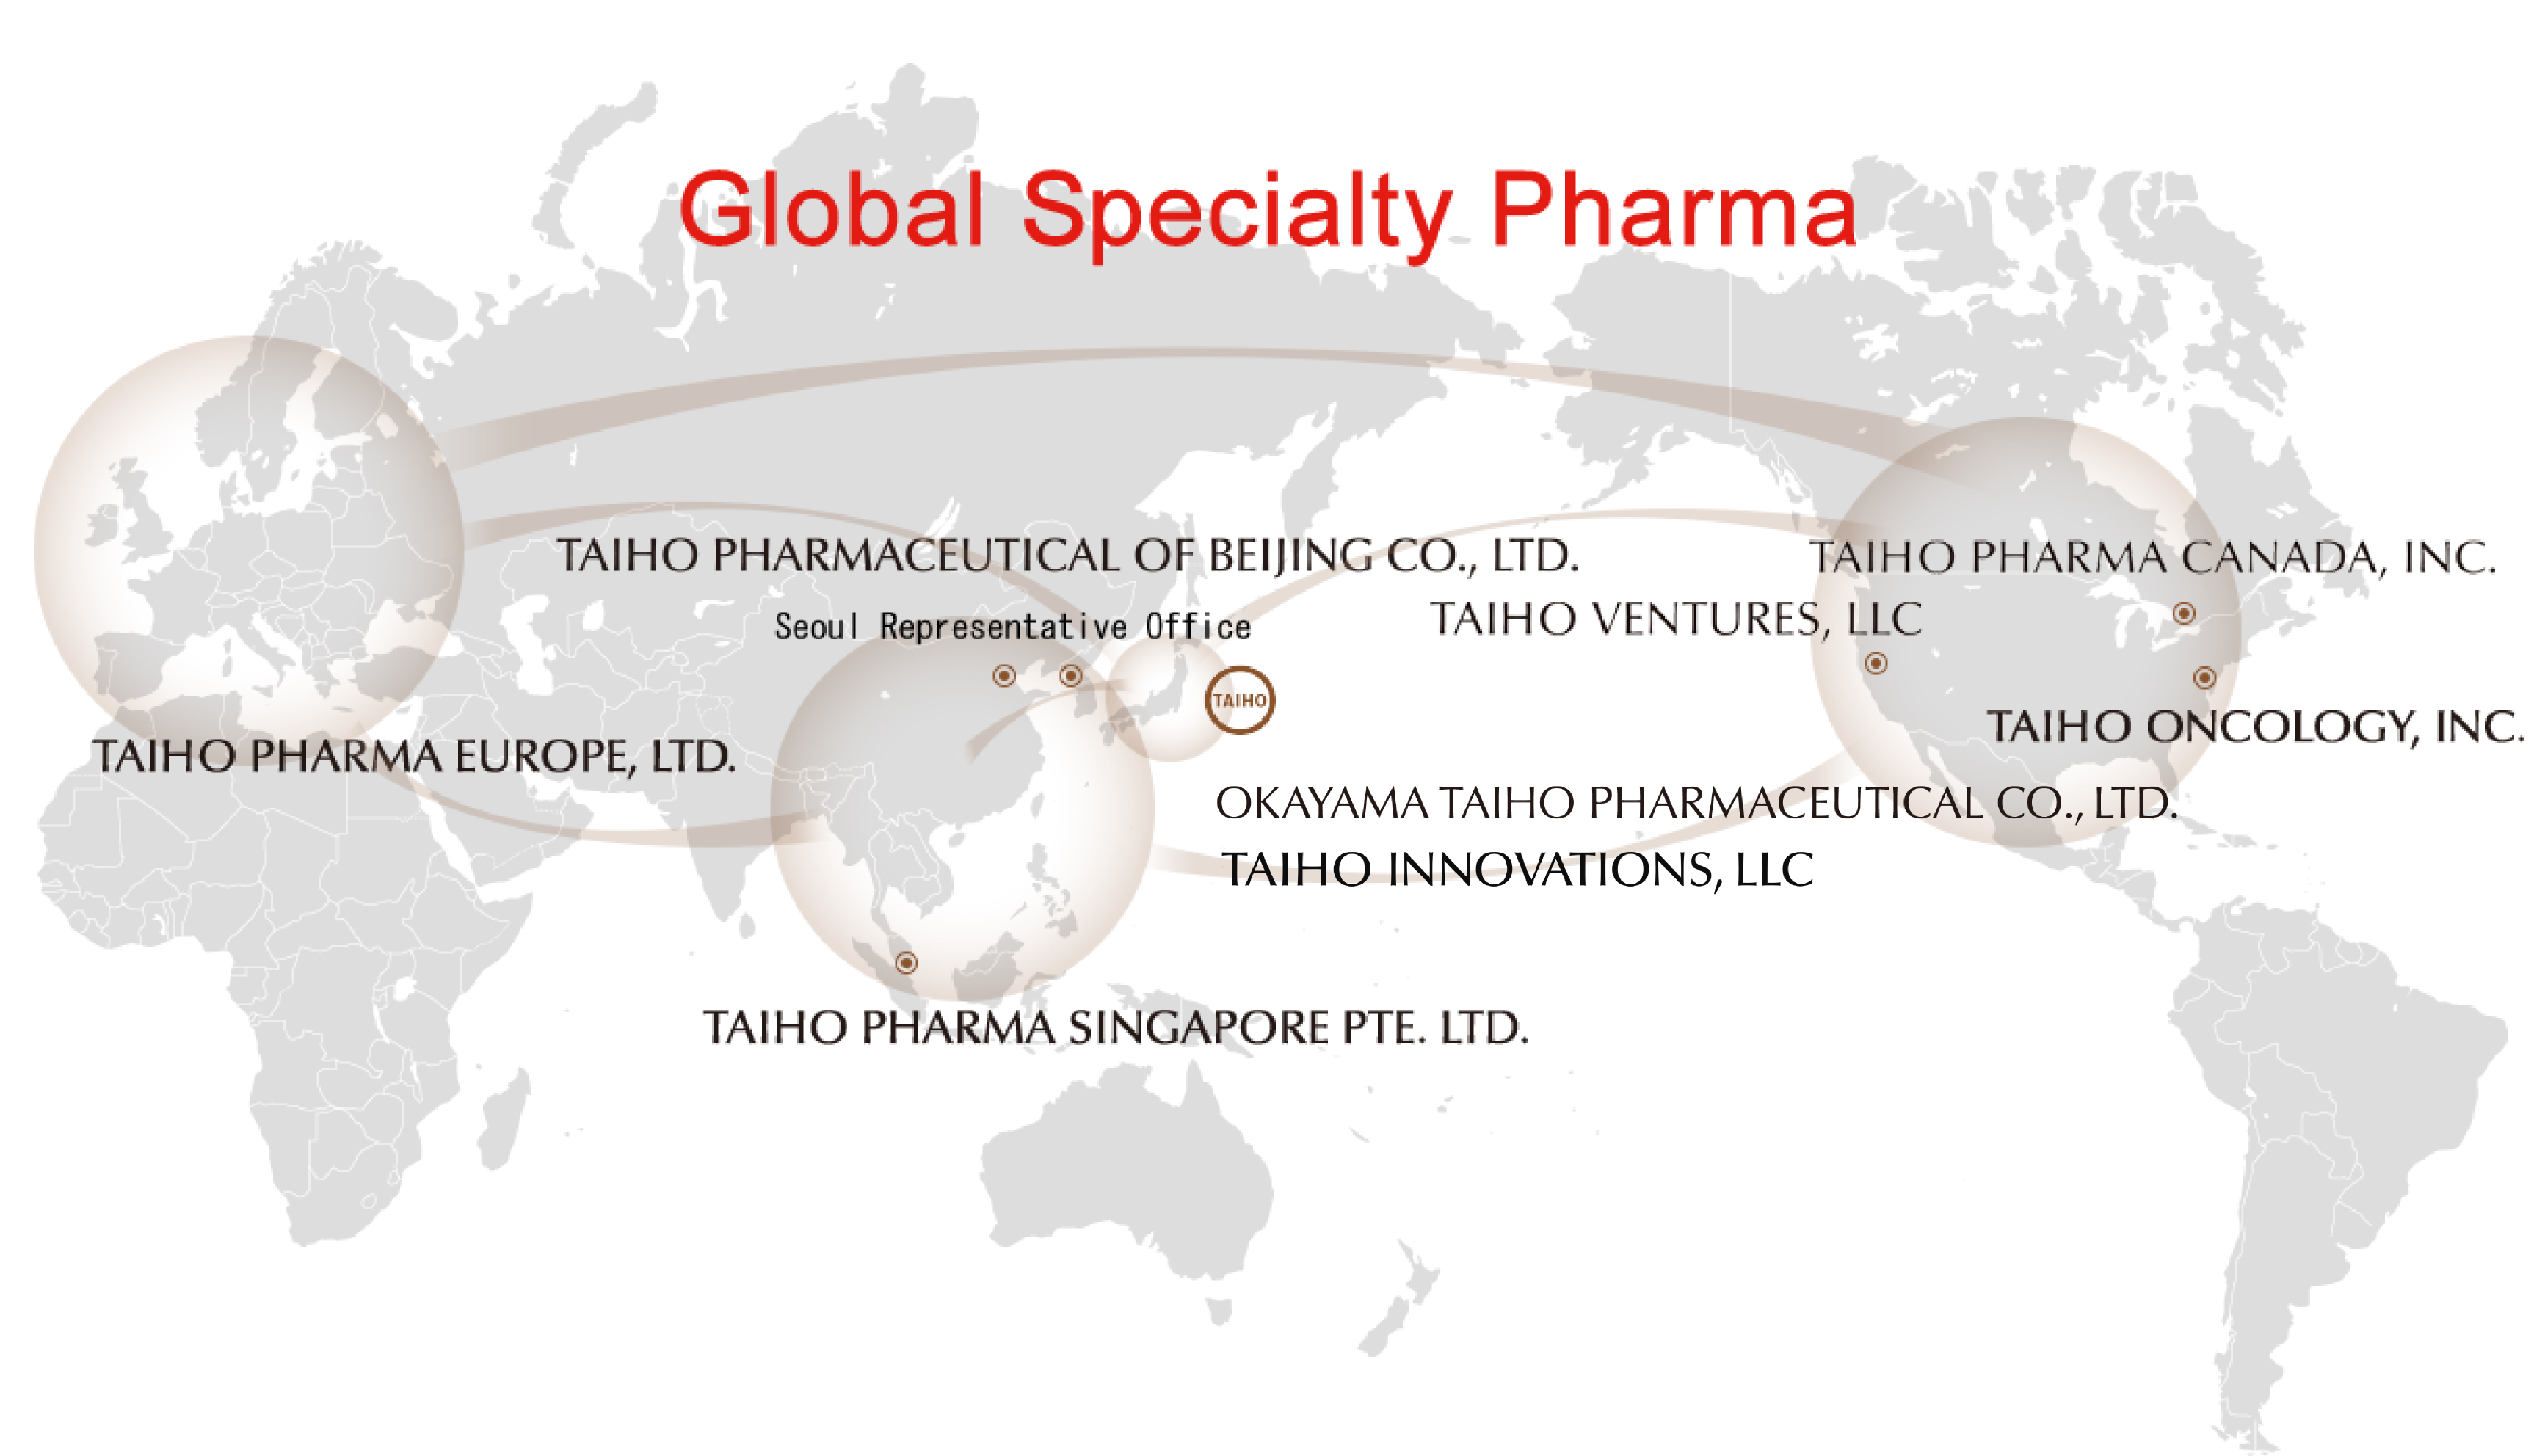 Global Specialty Pharma